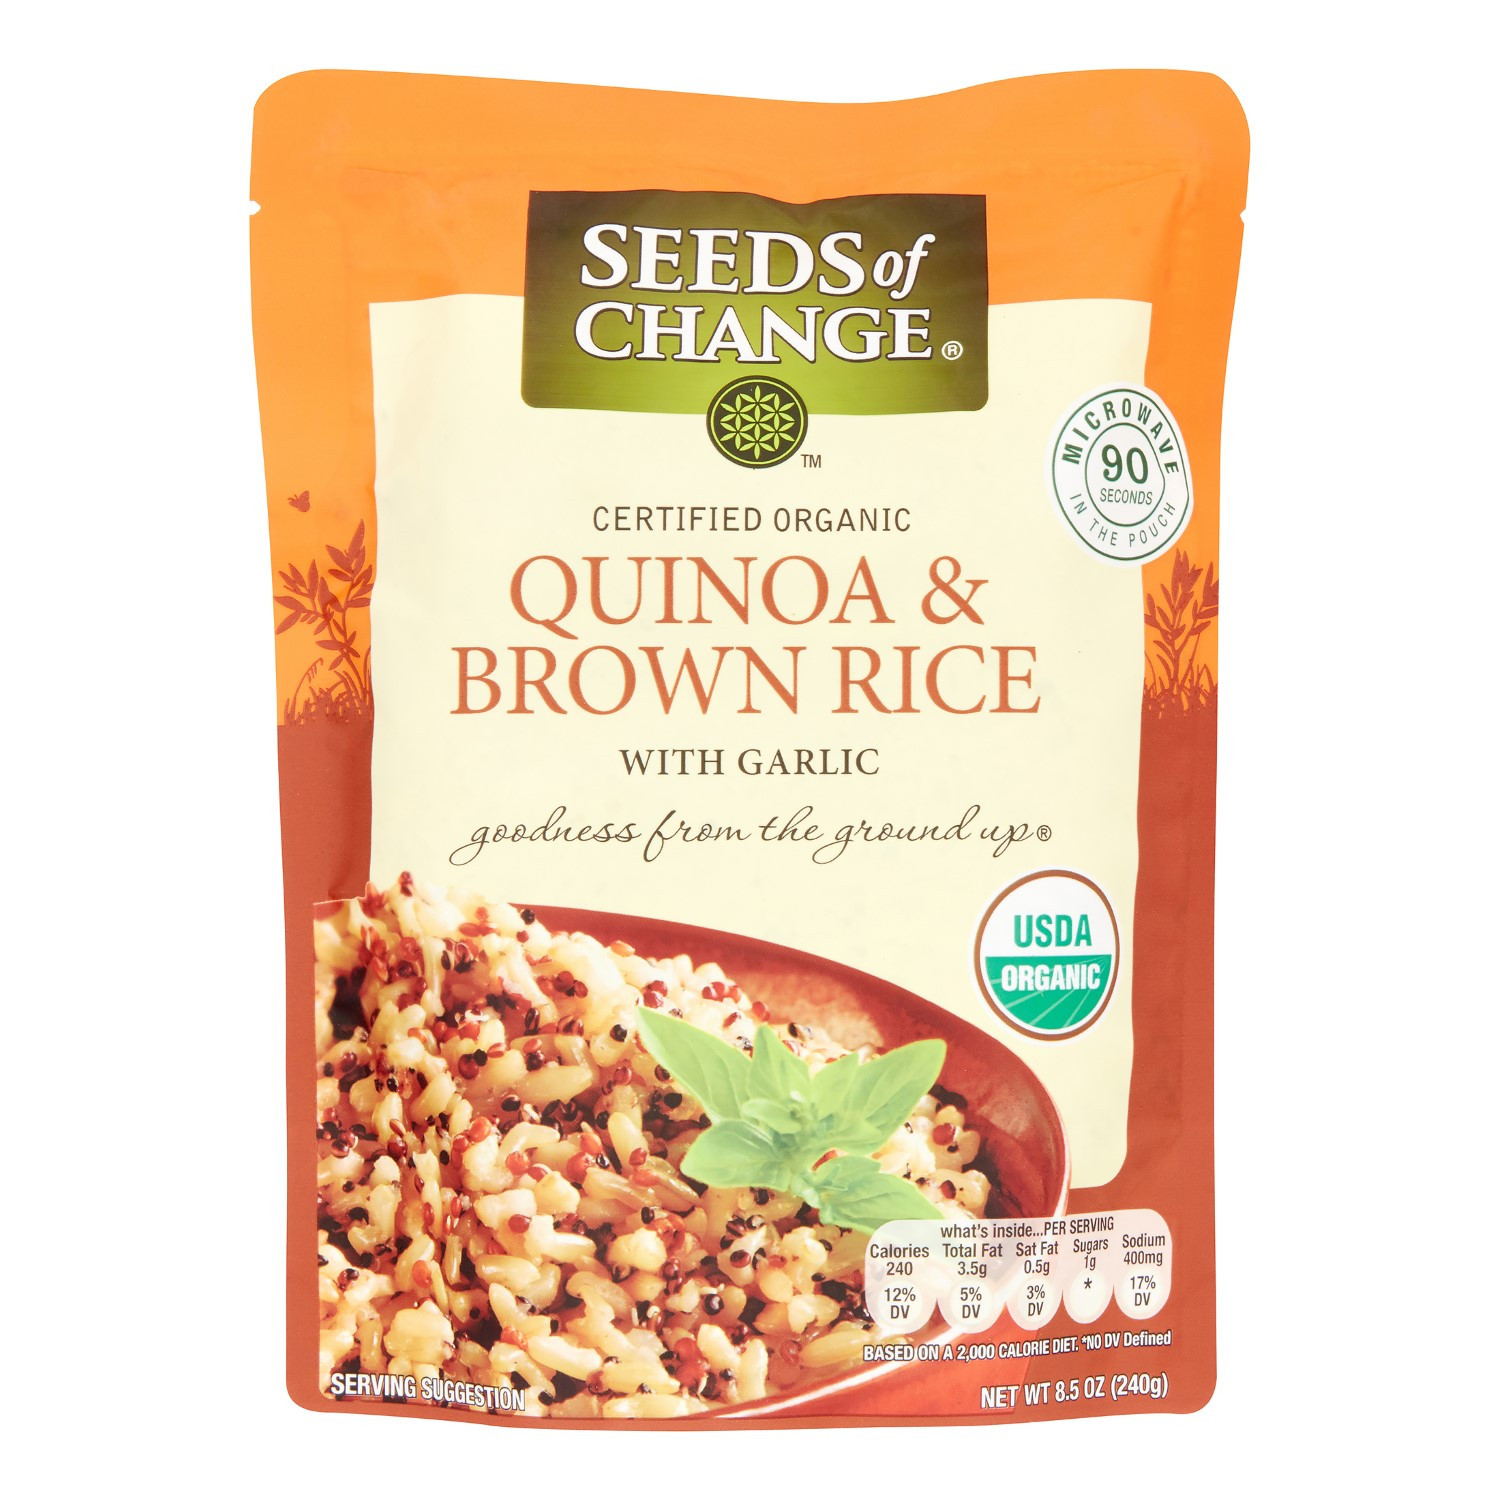 Seeds Of Change Organic Quinoa And Brown Rice  Seeds of Change Seeds of Change Microwavable Quinoa and